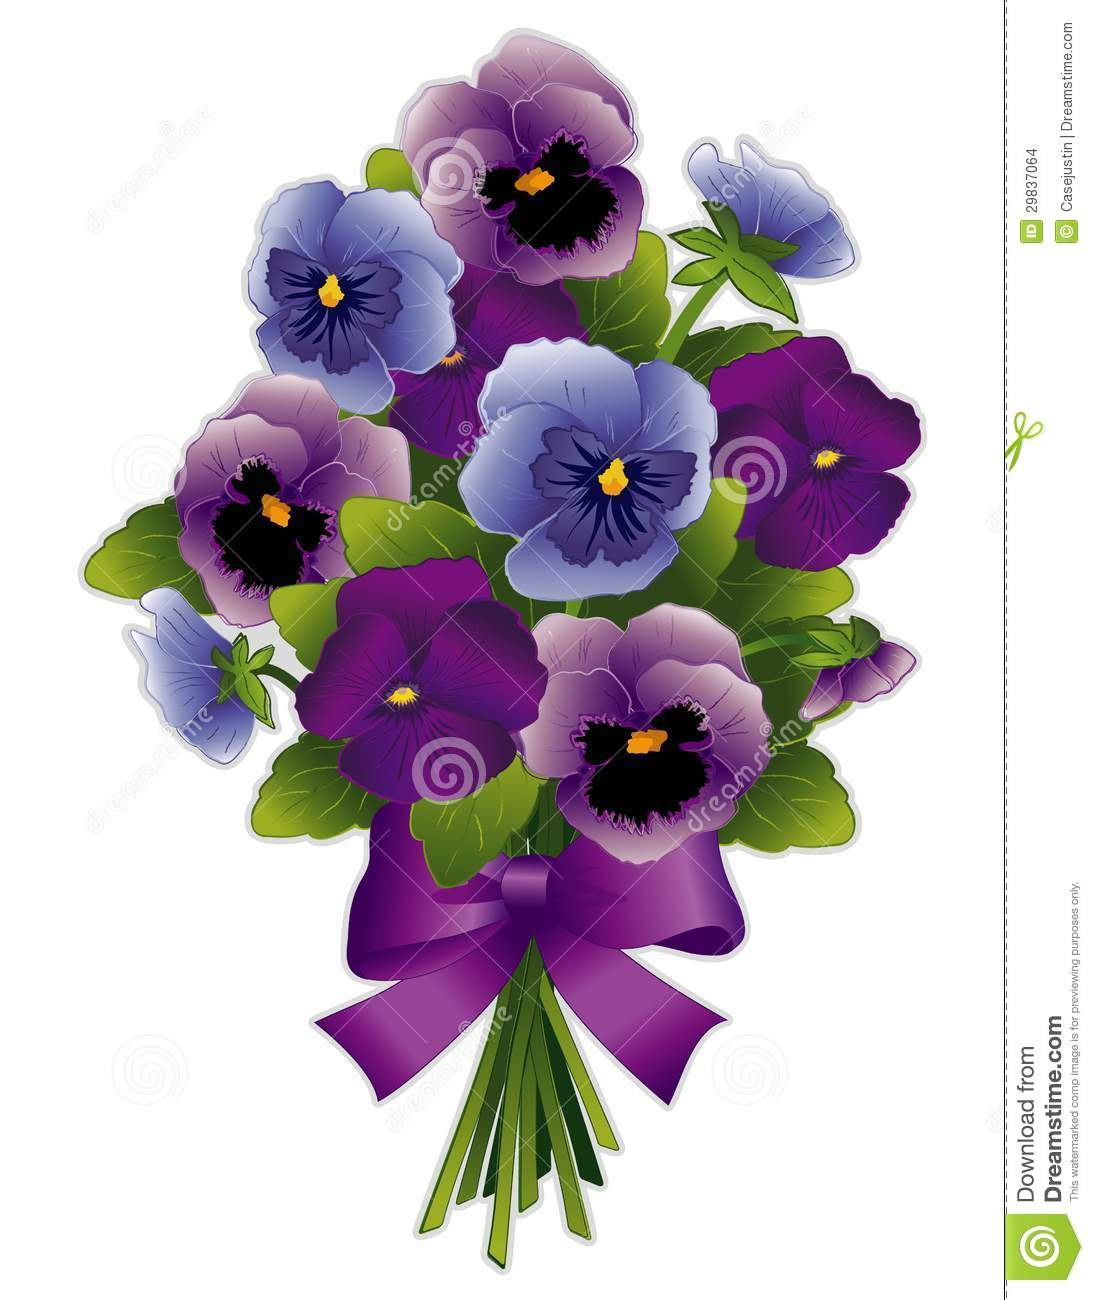 Pansy flower bouquet stock vector illustration of petal 29837064 pansy flower bouquet izmirmasajfo Images